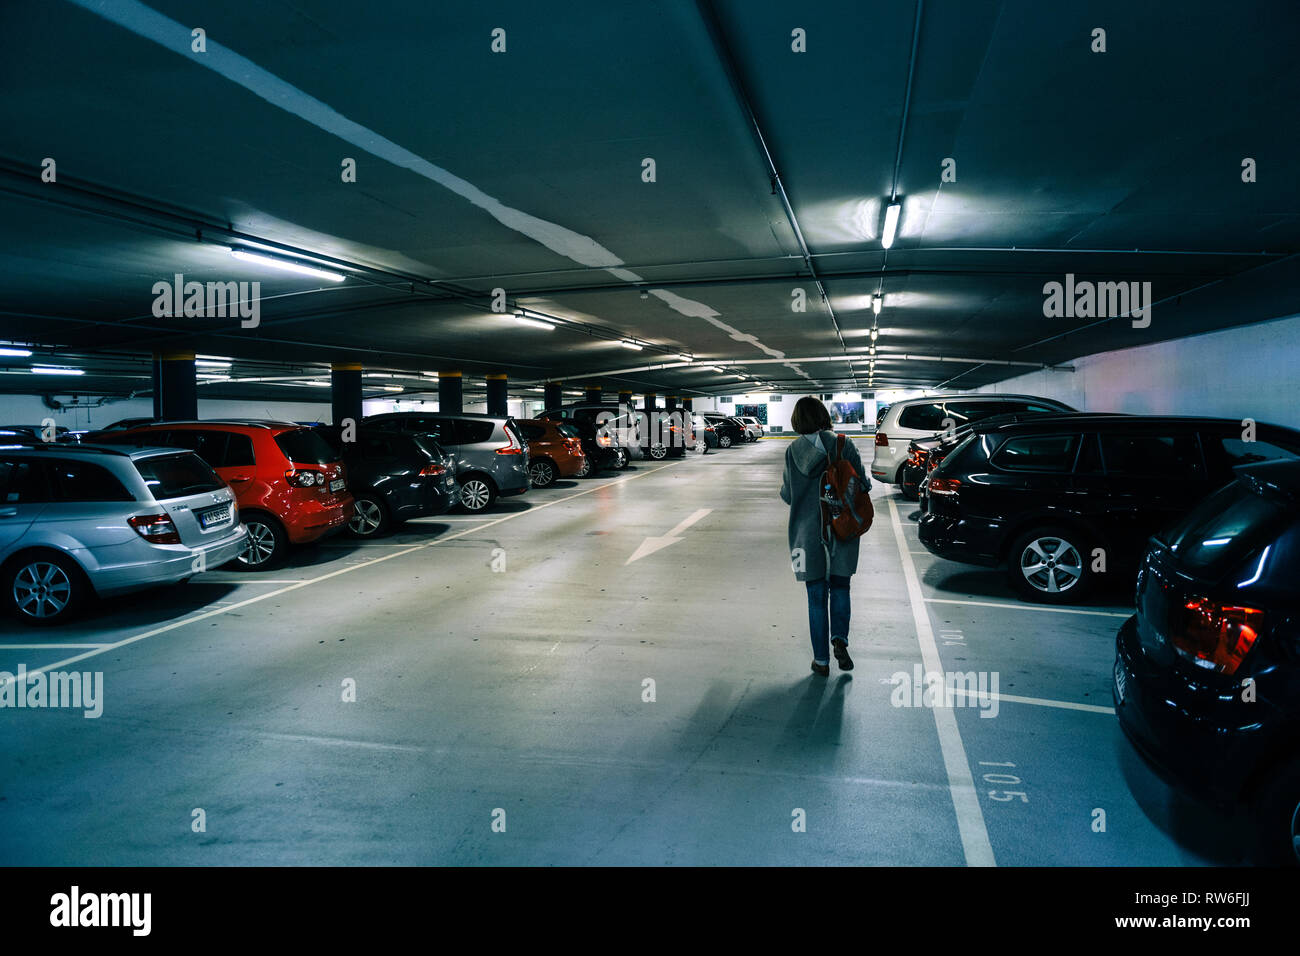 Karlsruhe, Germany - Oct 29, 2017: Rear view of German woman walking toward car in new underground parking in Schlossplatz blue tone colored parking with multiple cars parked and female dedicated area for park - Stock Image